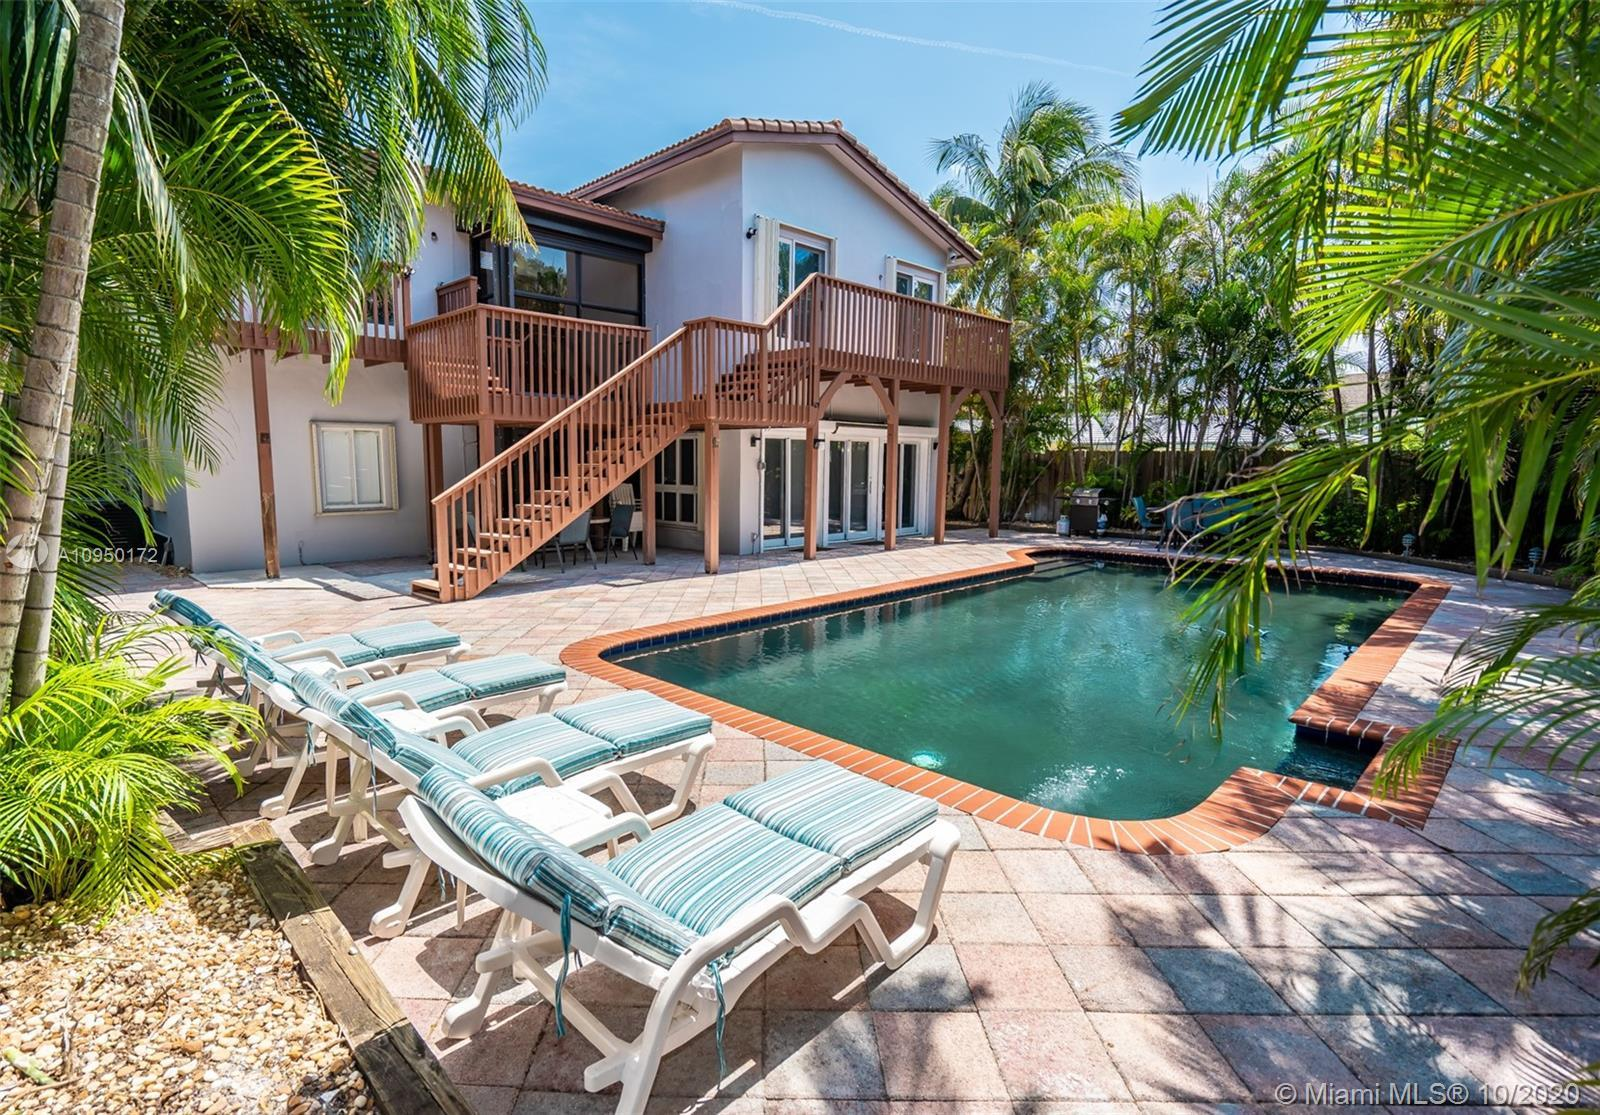 STUNNING 2 STORY HOME, 4 BEDROOM, 3 FULL BATH PLUS DEN OR OFFICE. WALK TO THE BEACH AND TOWN WITH A